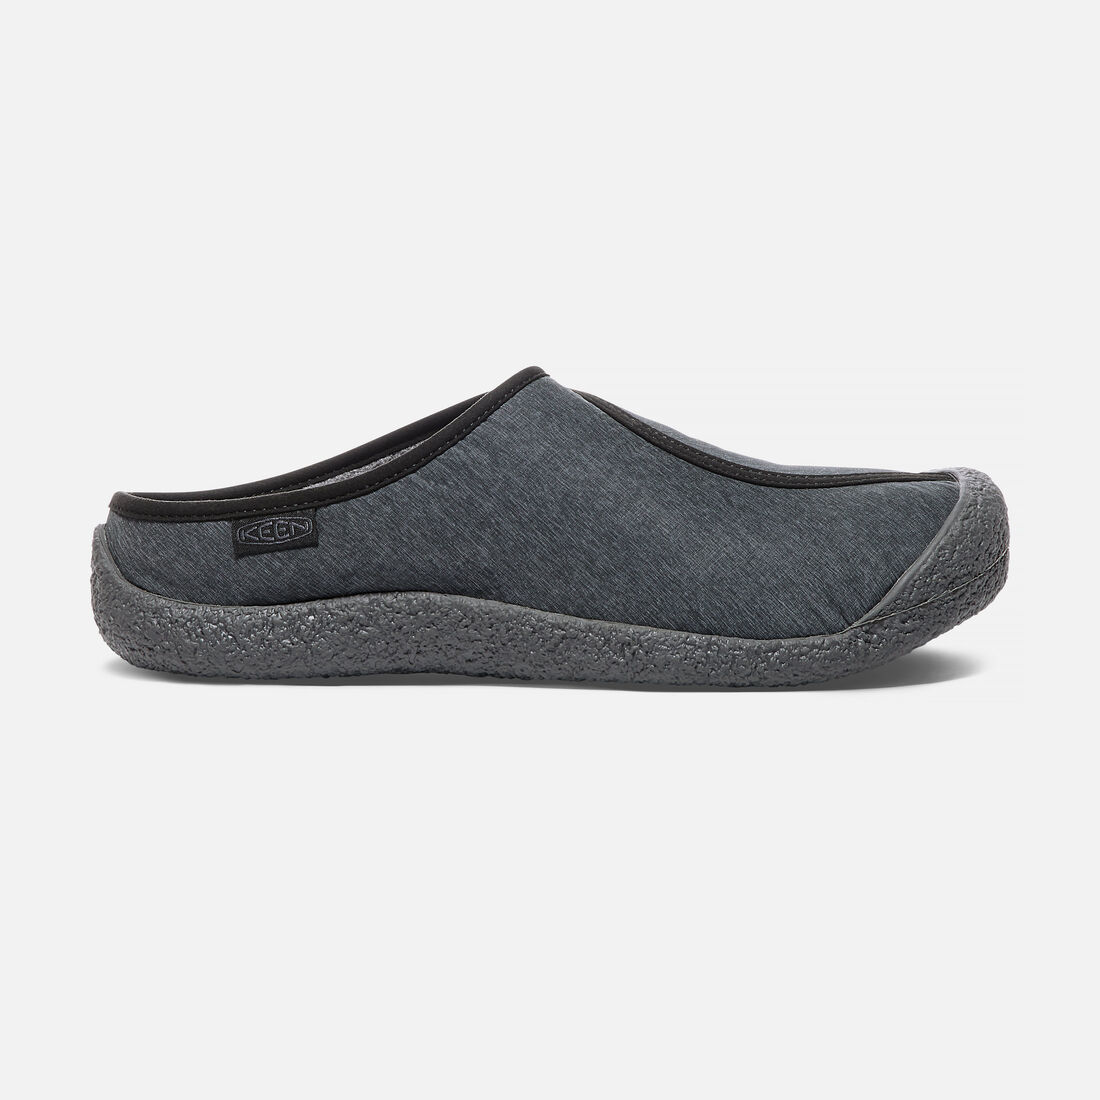 Men's HOWSER DOWN SLIDE in Black/Magnet - large view.